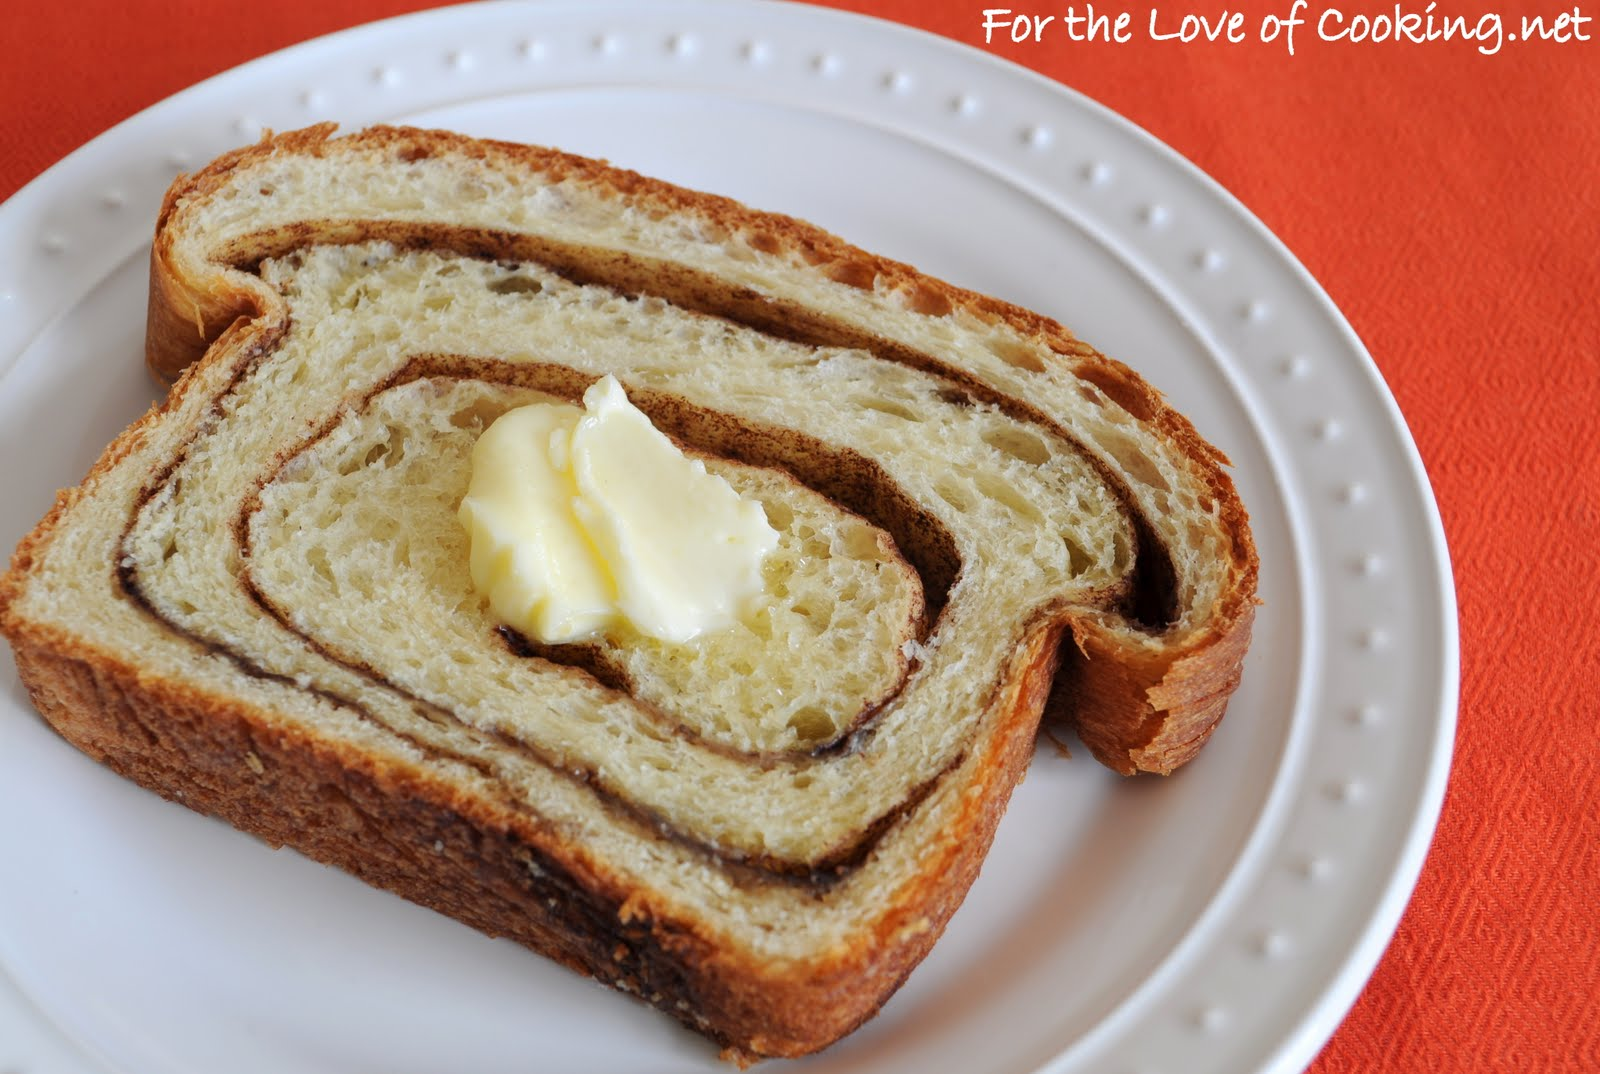 Cinnamon Swirl Bread | For the Love of Cooking